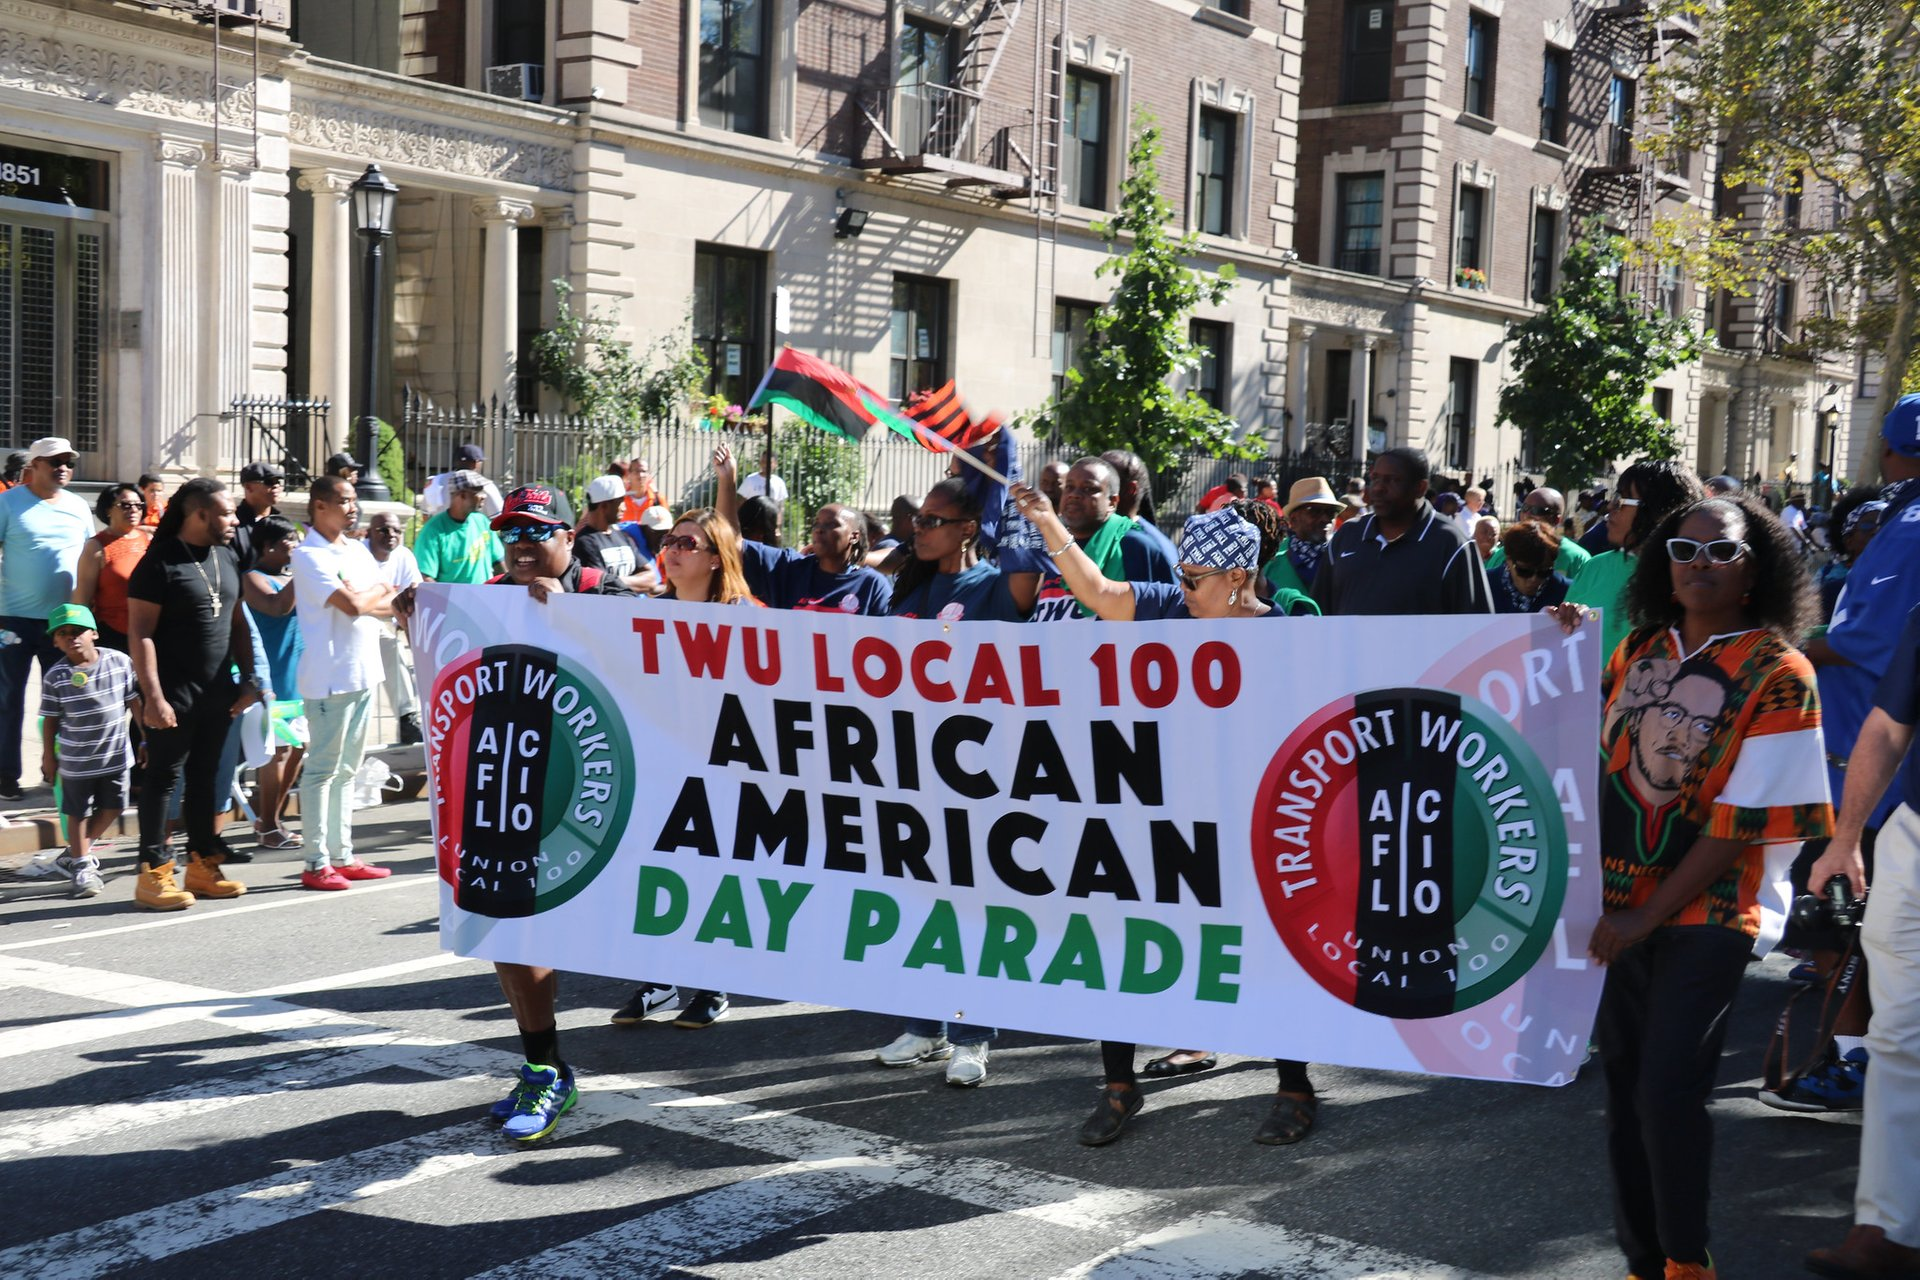 African American Day Parade in New York - Best Season 2020